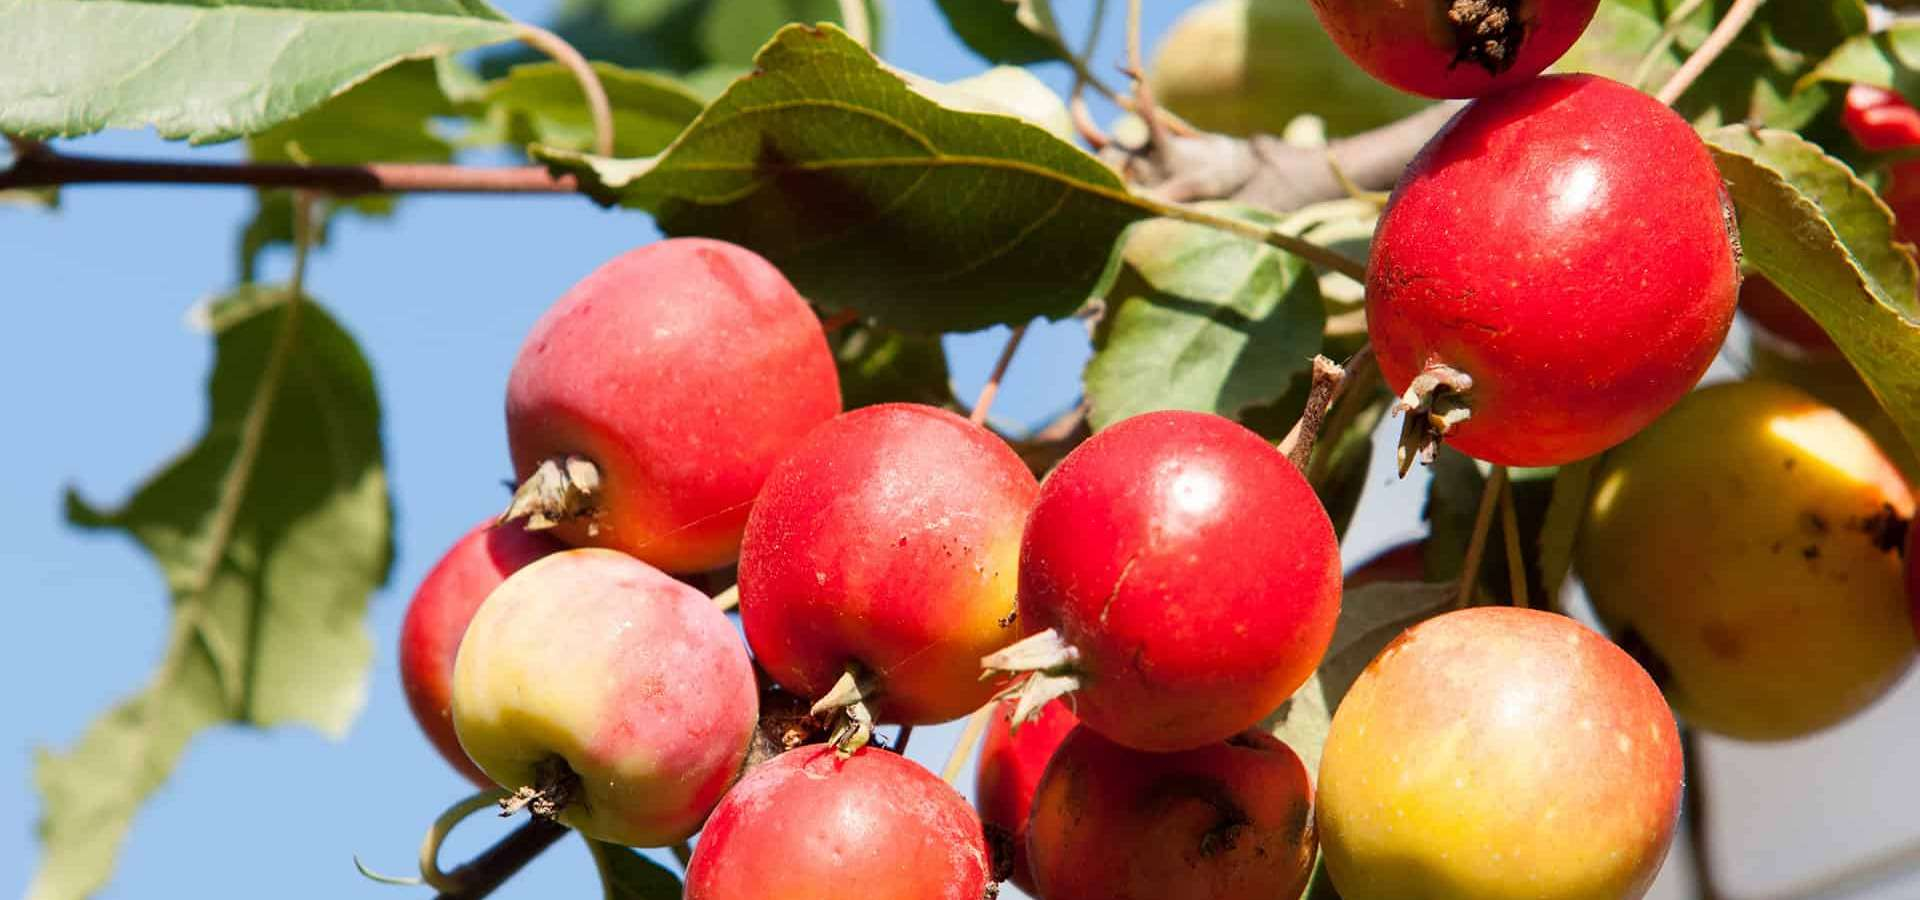 Crabapples - all you need to know